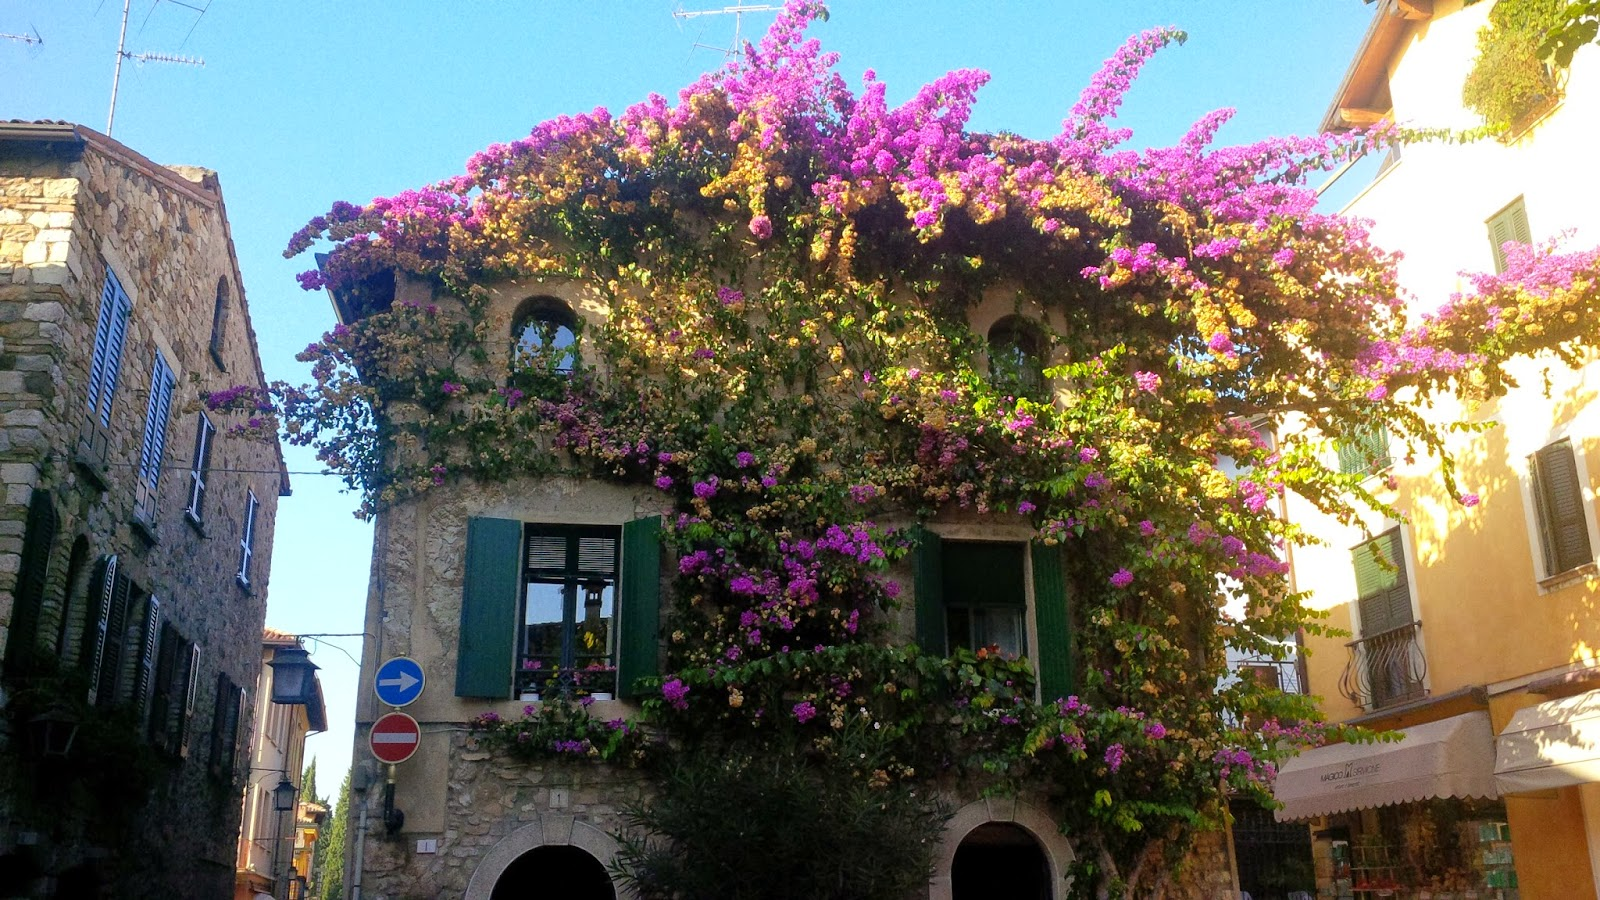 A fabulous covered in a flowering bush house in Sirmione